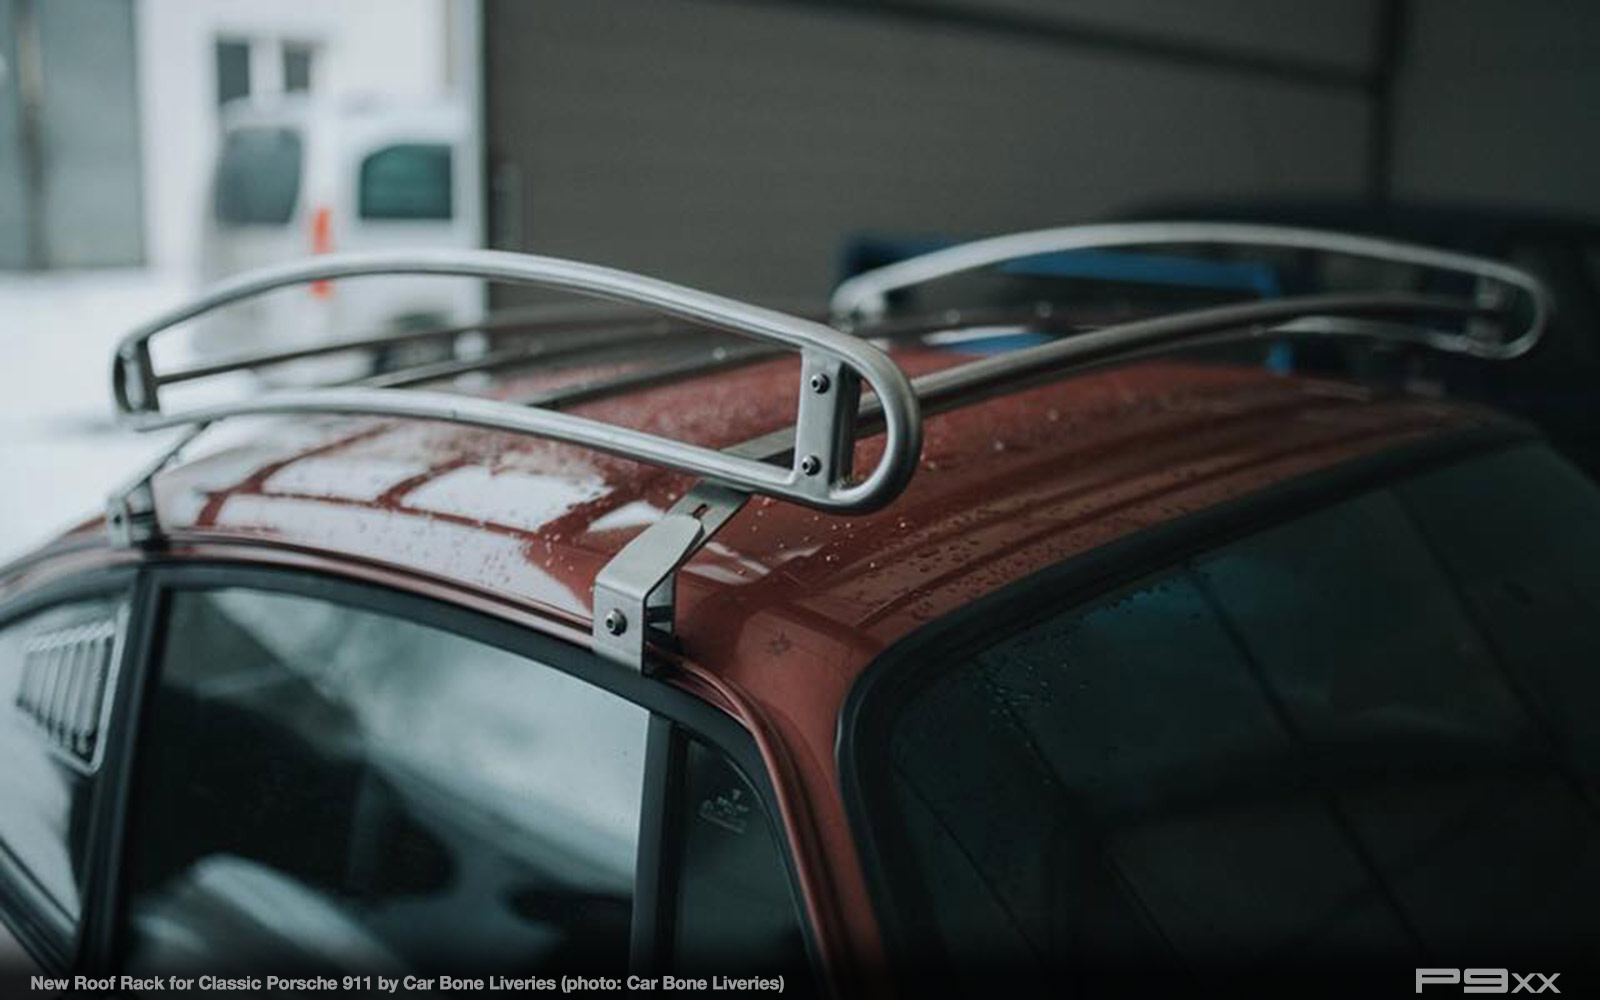 Roof Rack For Classic 911 From Car Bone Liveries P9xx